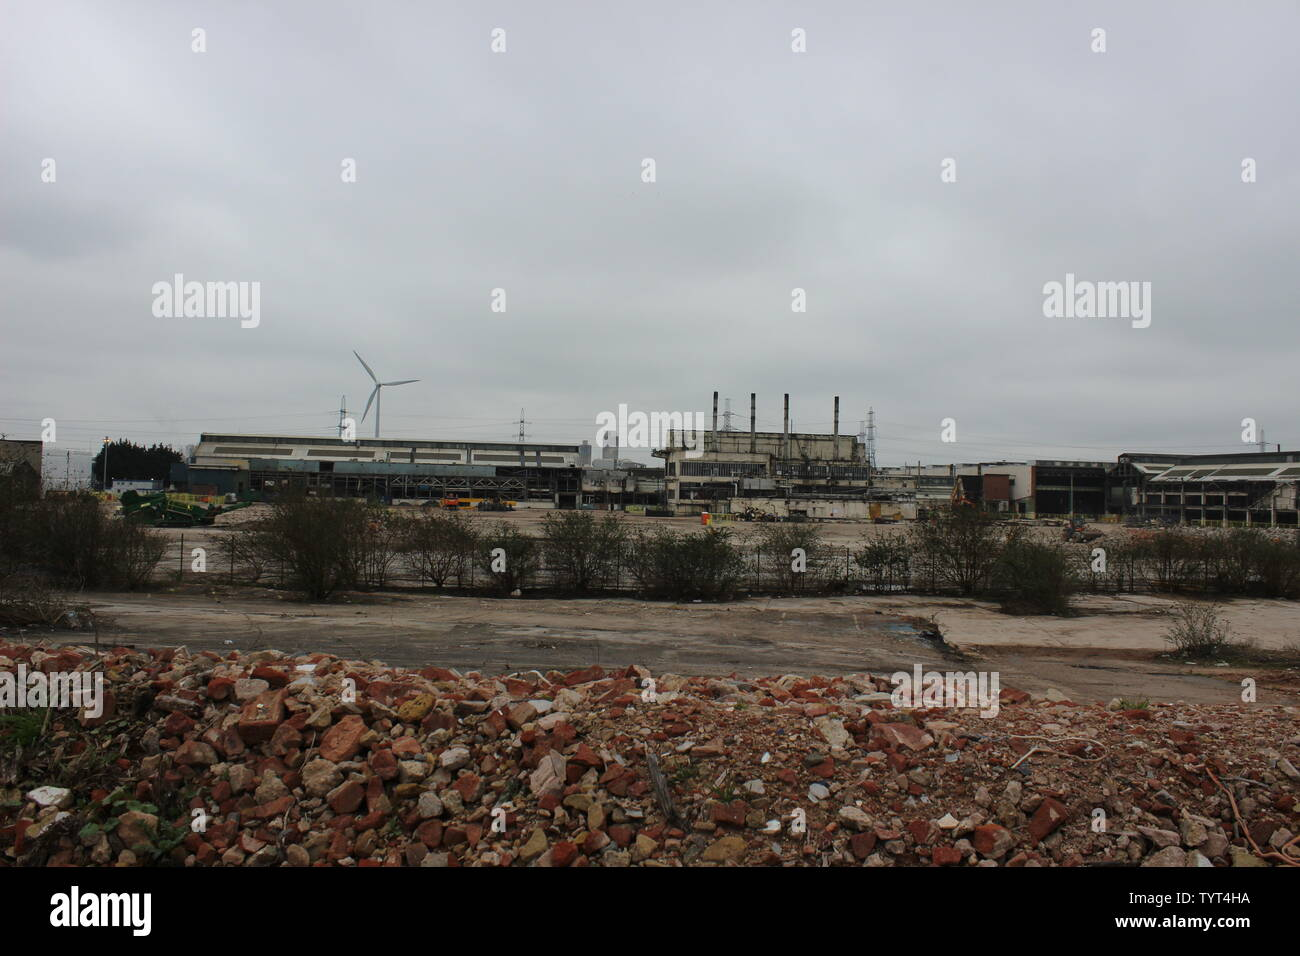 Ford Stamping Plant High Resolution Stock Photography And Images Alamy